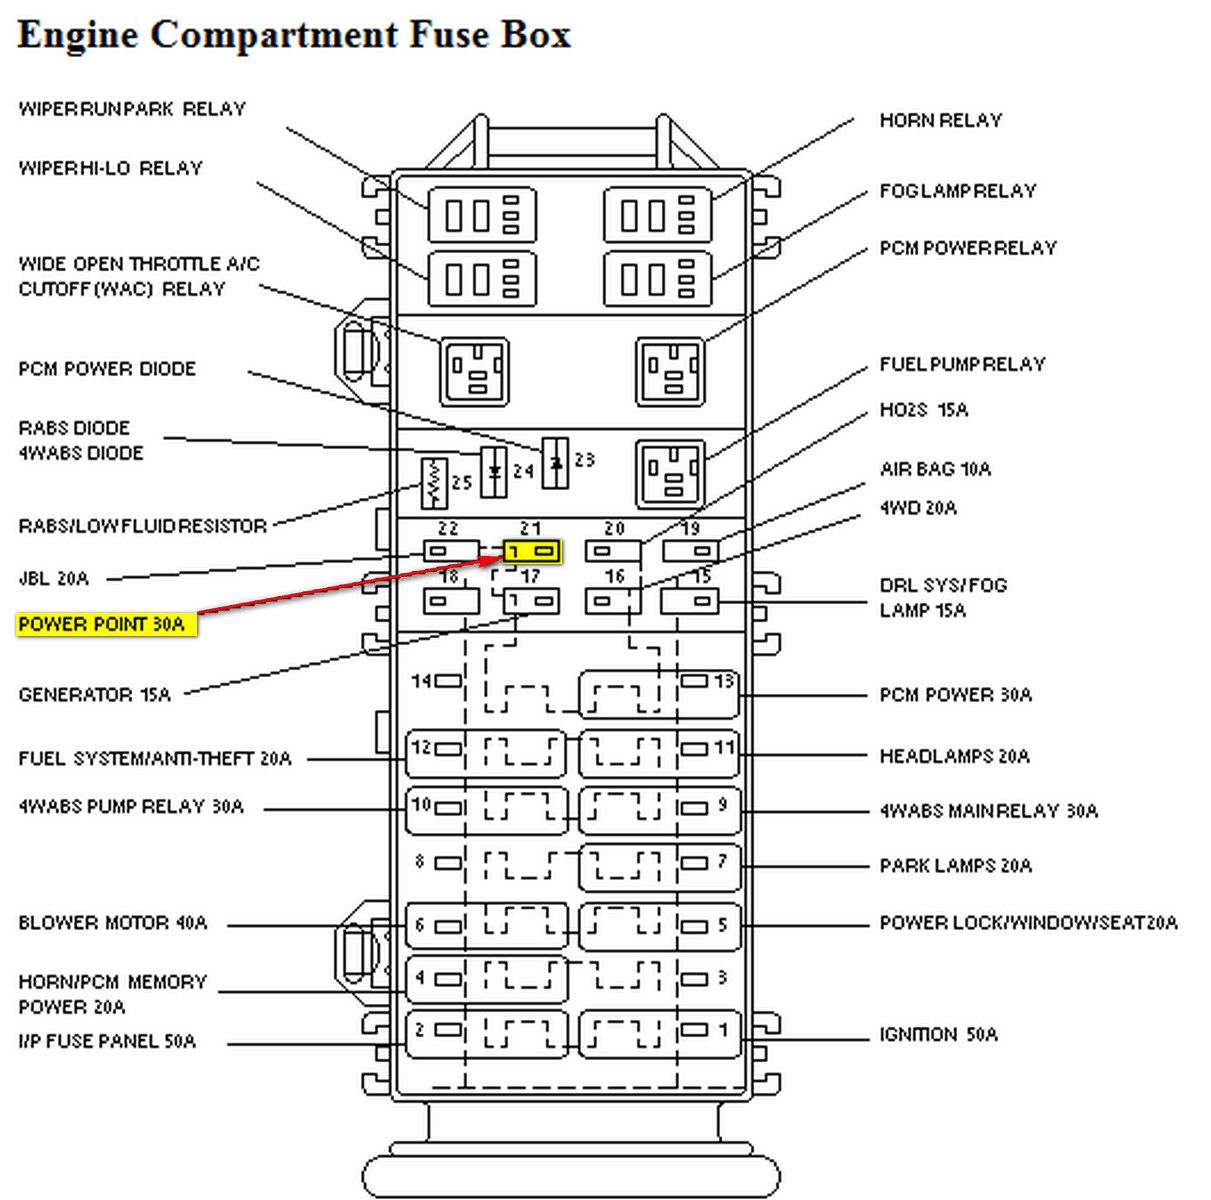 8a55967da7ae1bd251b795845886bd24 2002 ford ranger fuse diagram 1997 ford ranger fuse box diagram 2002 ford ranger fuse box diagram at webbmarketing.co